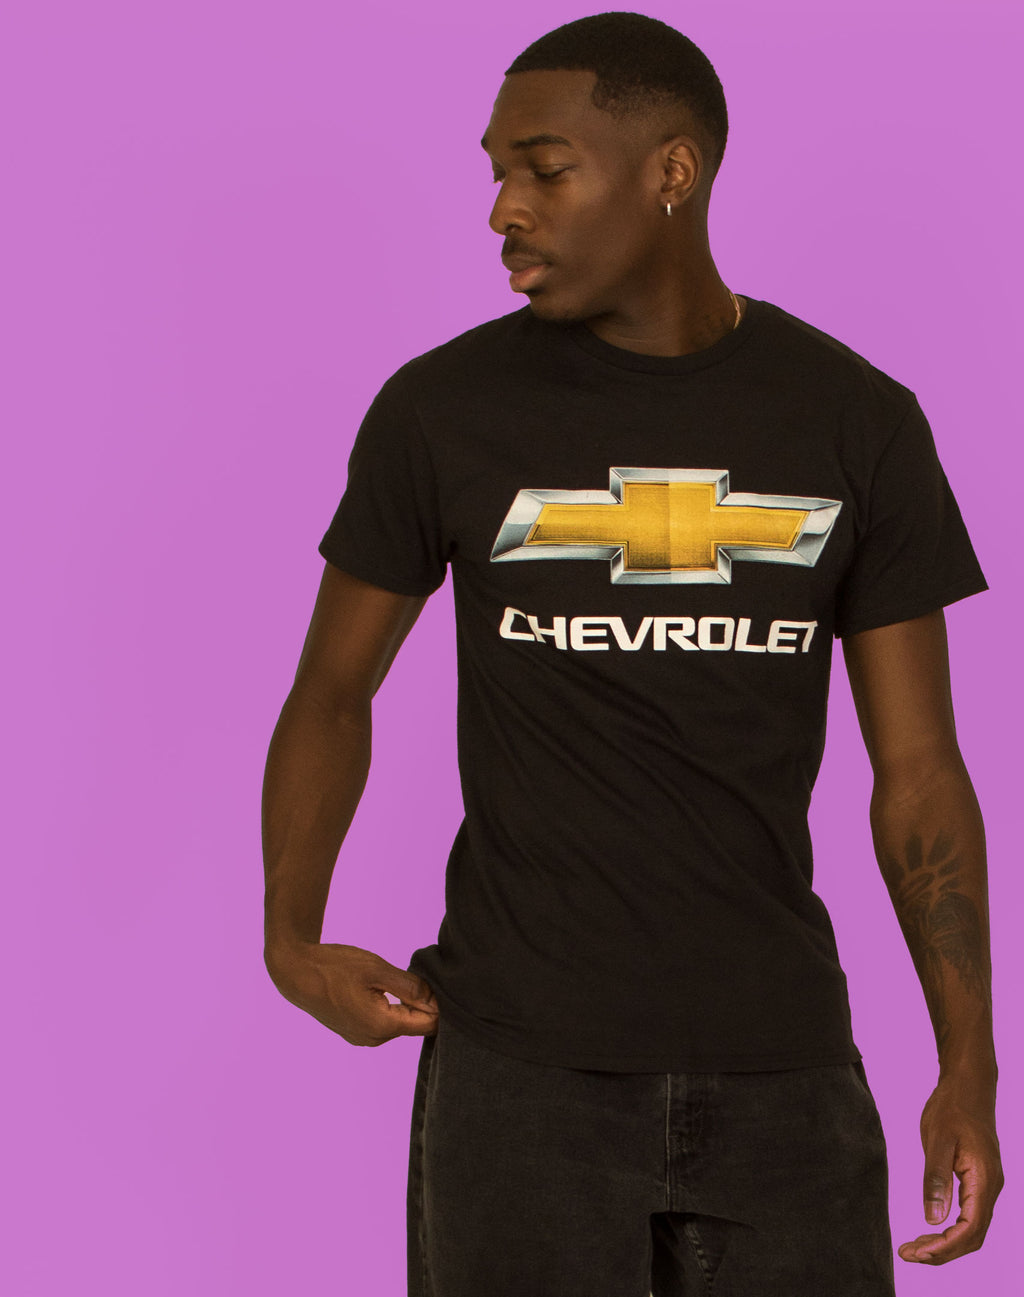 CHEVROLET BLACK T-SHIRT